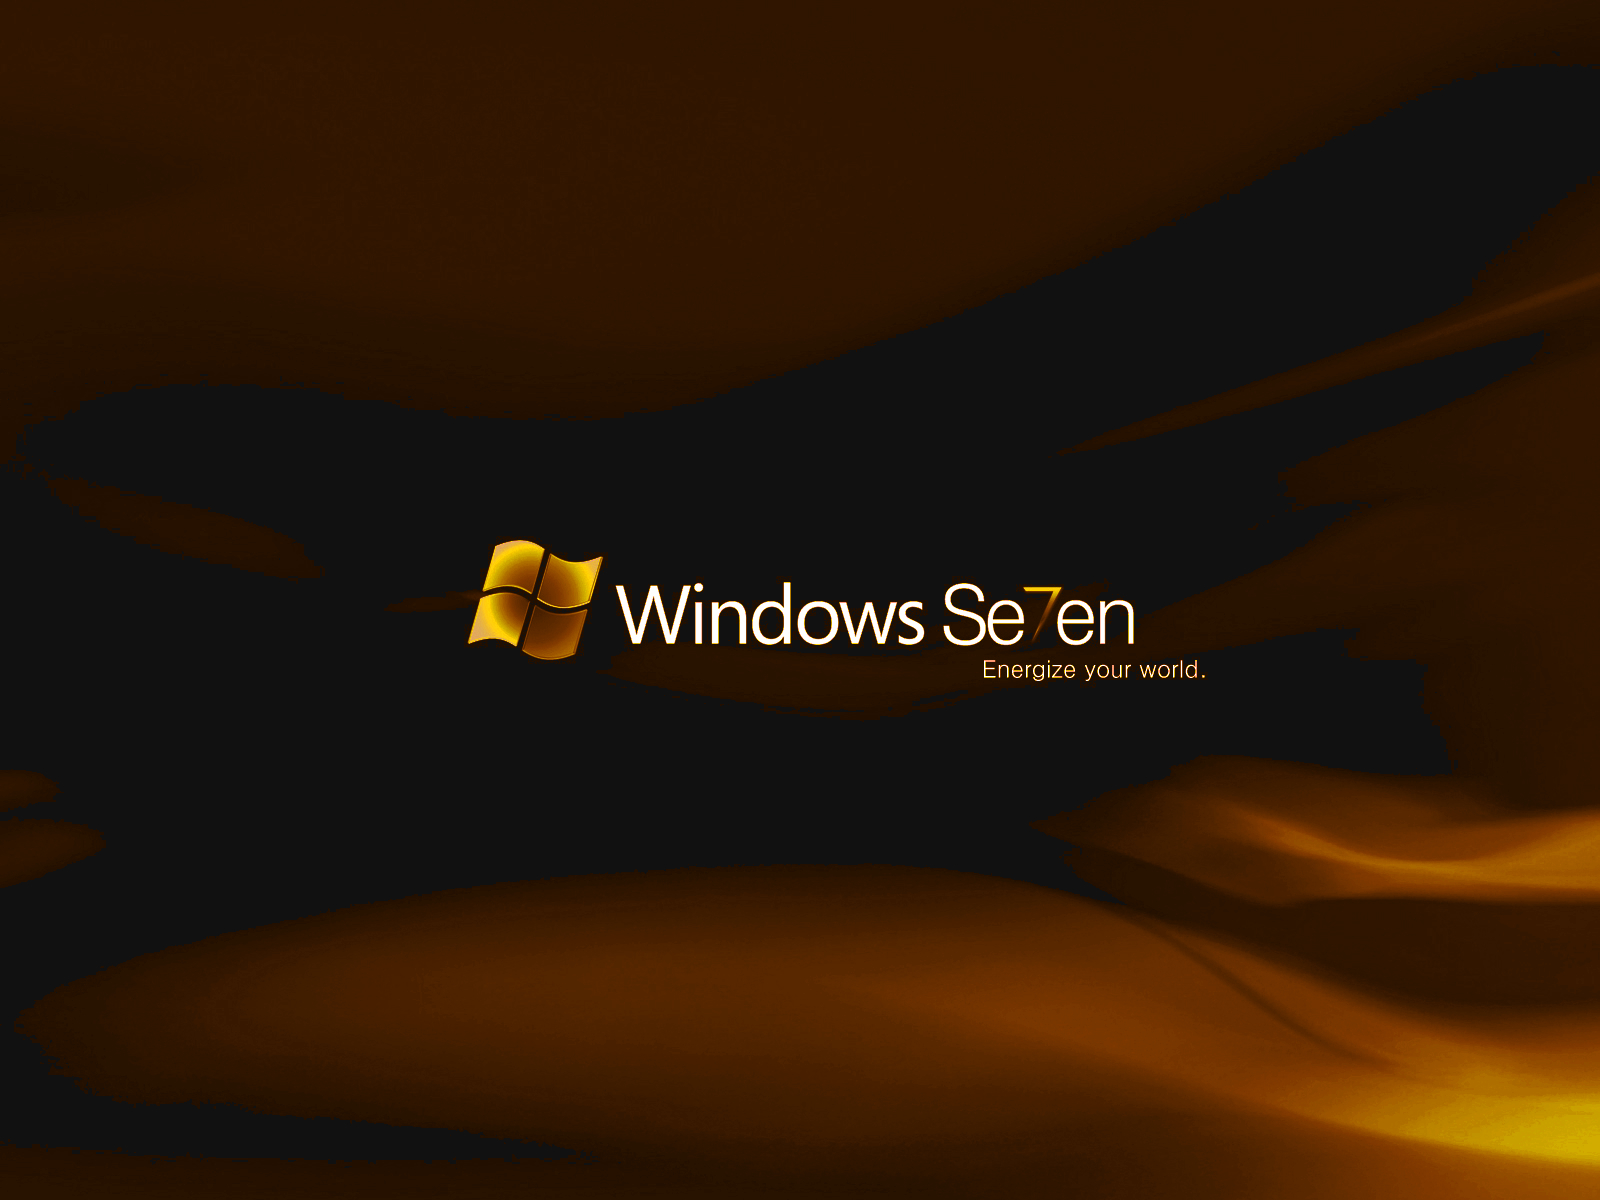 windows_7_wallpaper_2_windows_7_energize_by_windows-jagodunya-hd